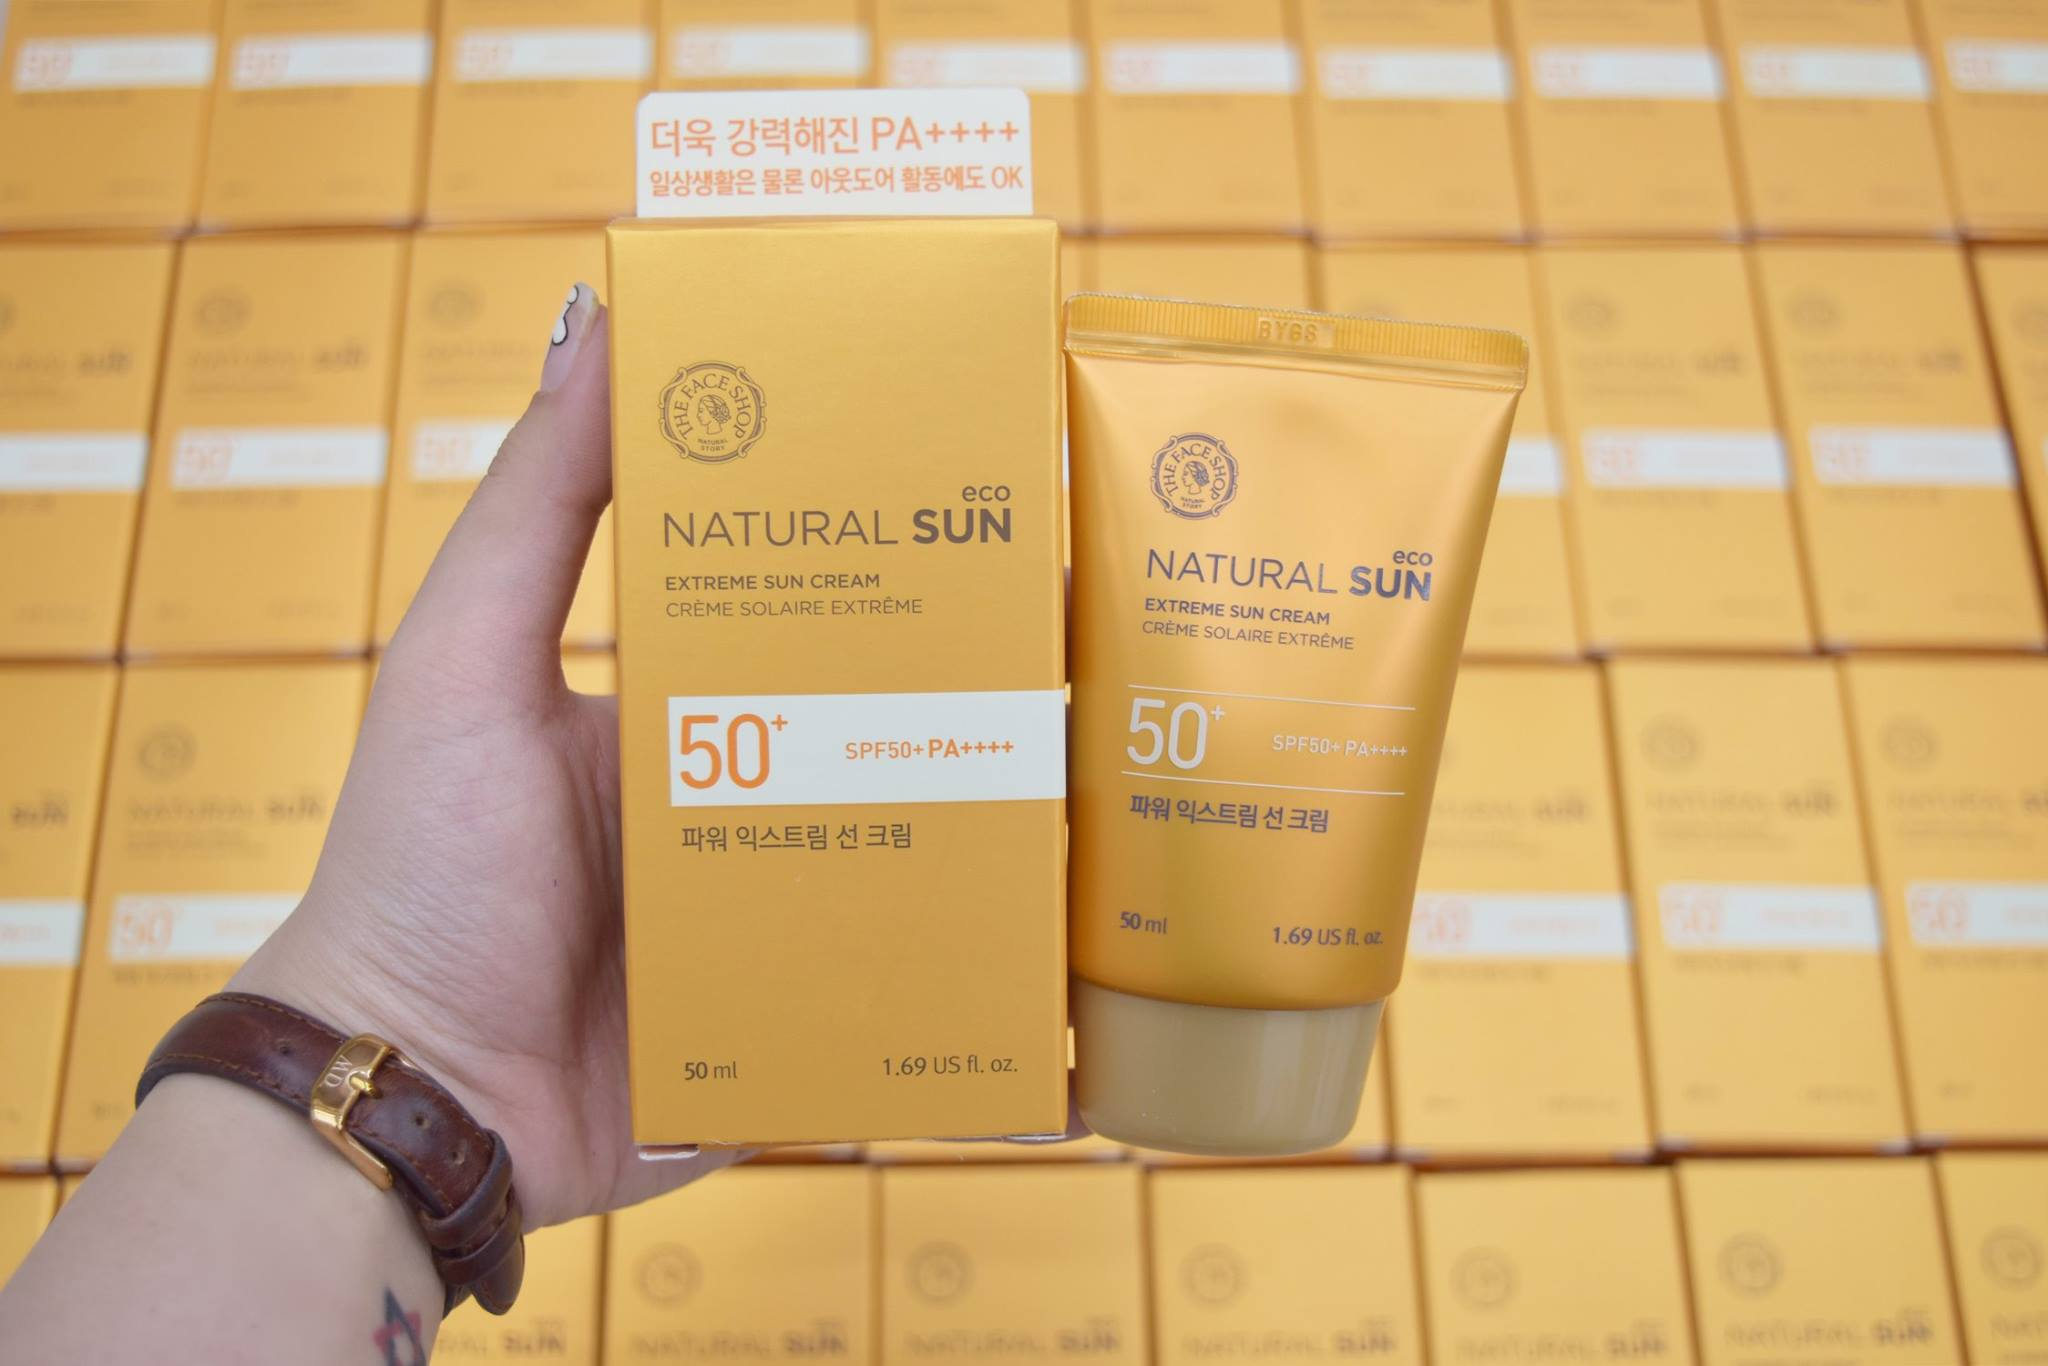 kem-chong-nang-natural-sun-eco-extreme-sun-cream-the-face-shop